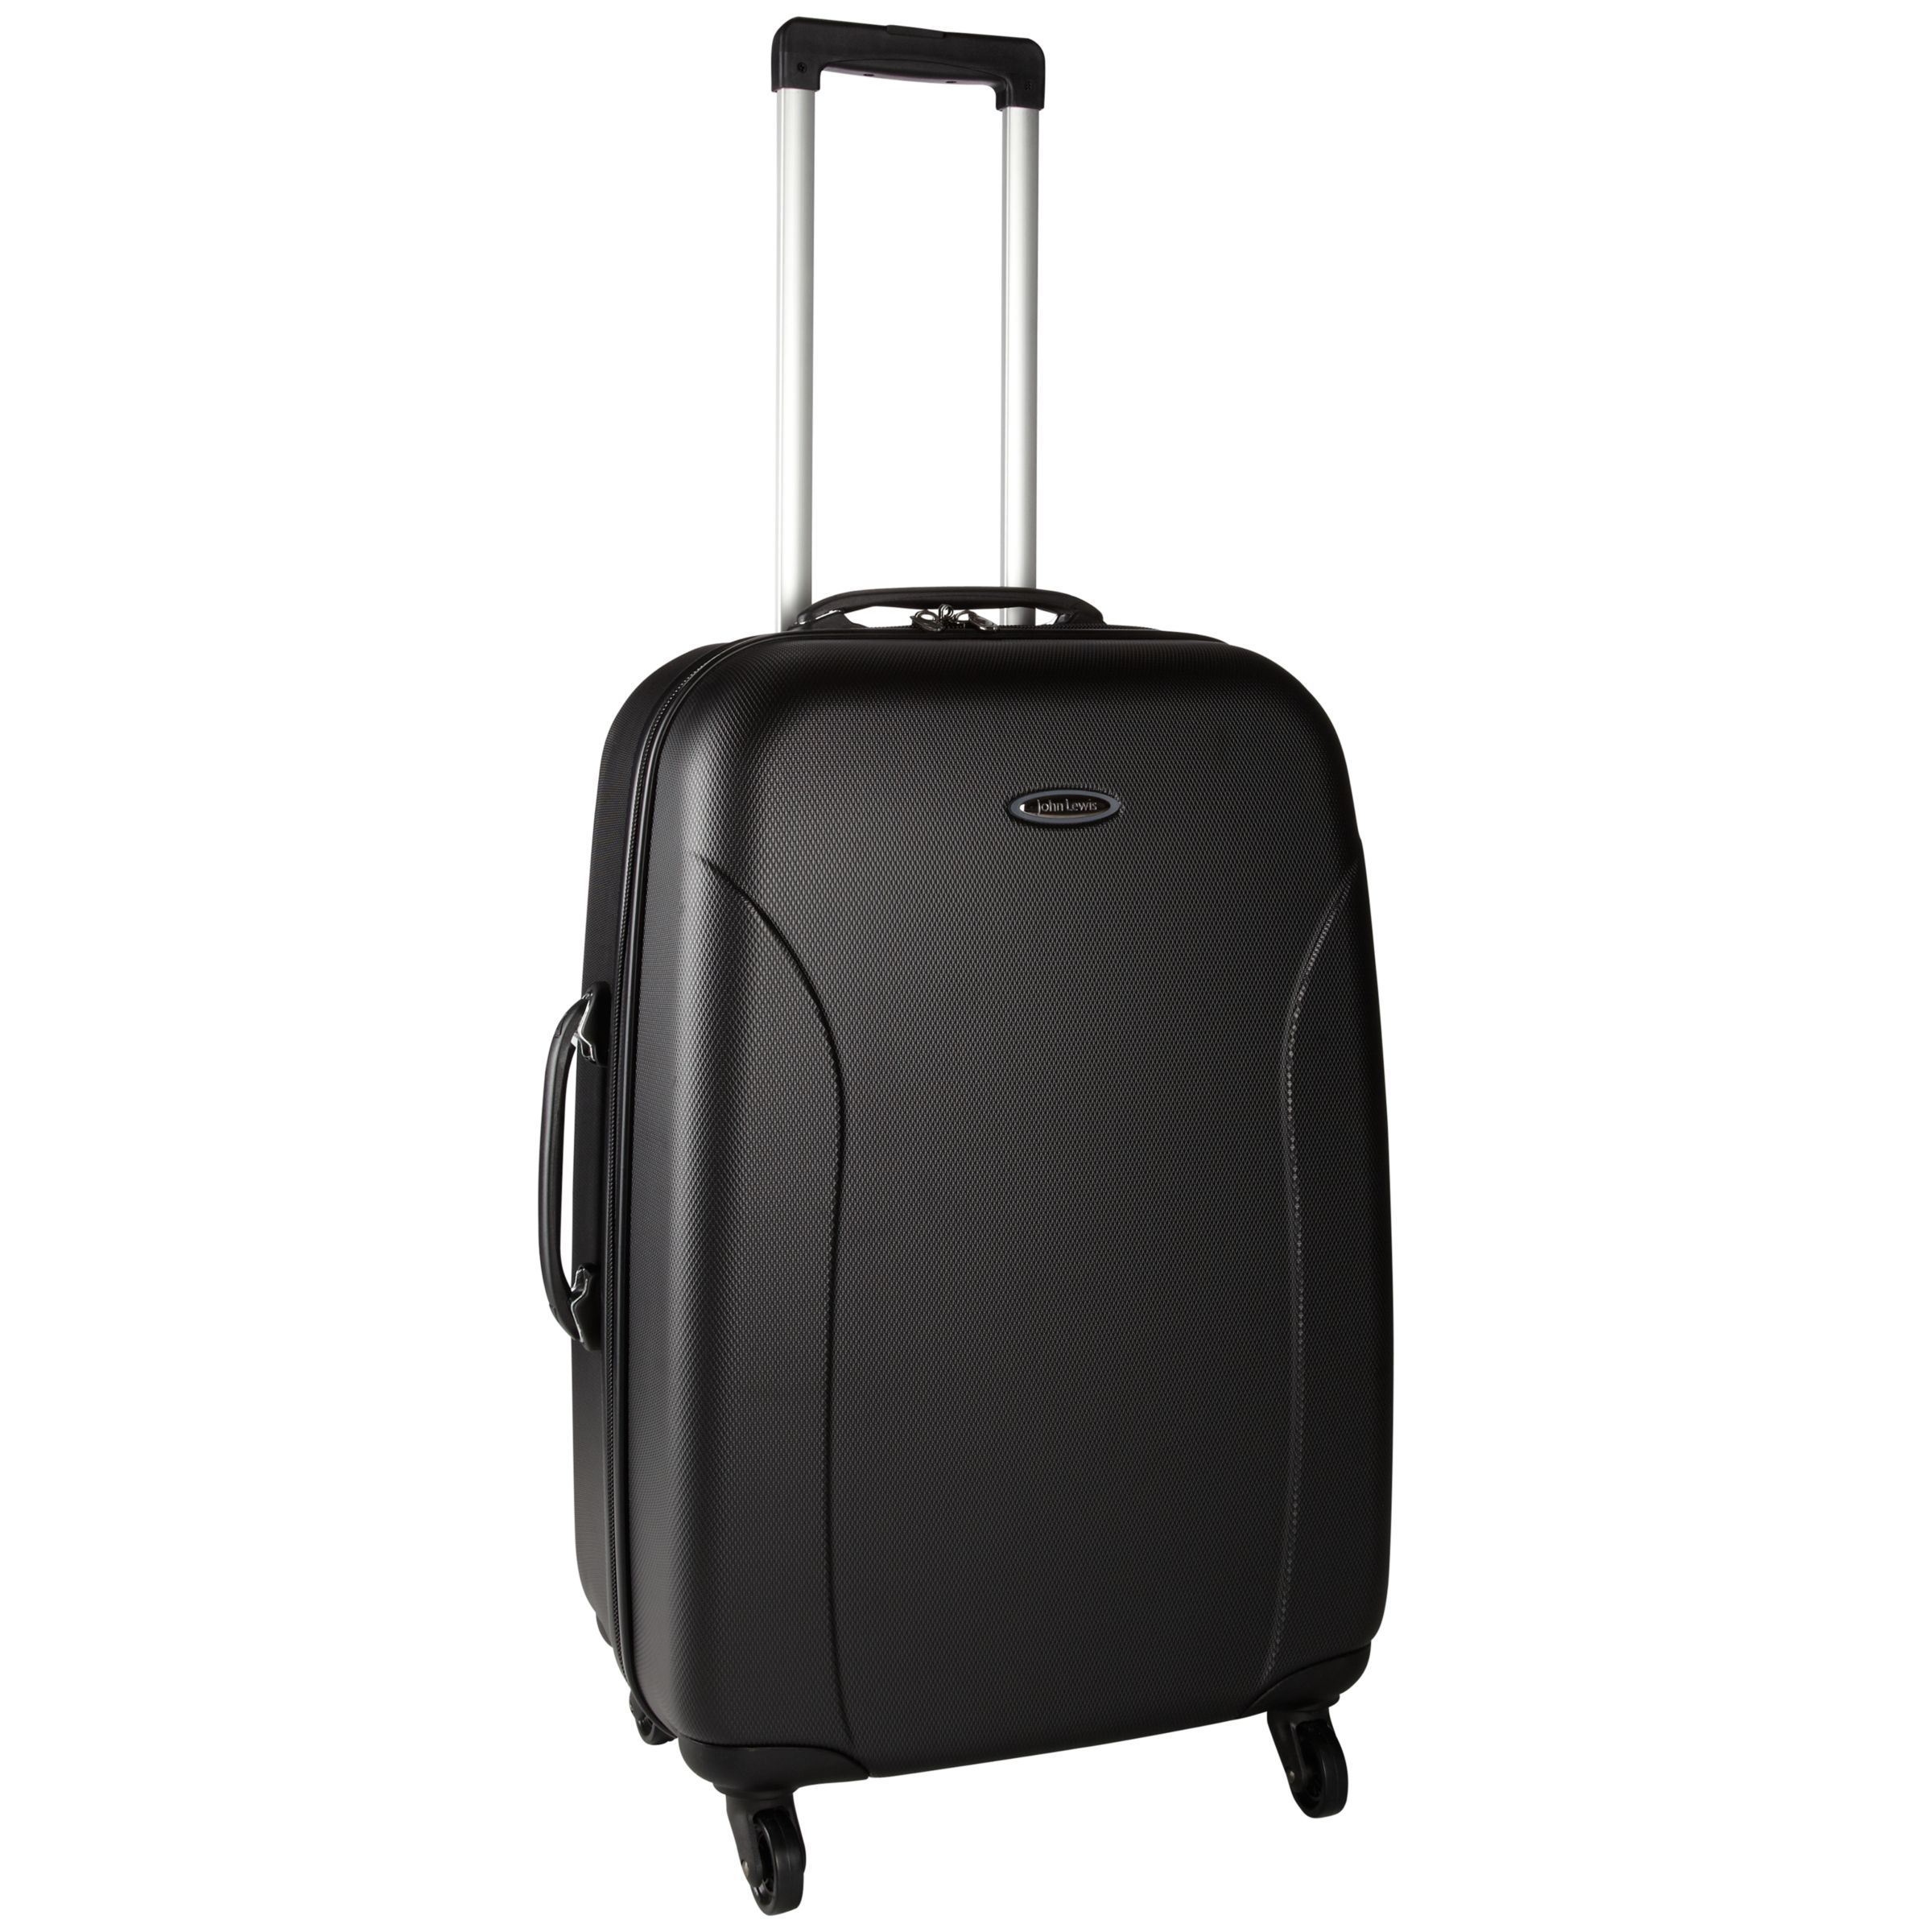 John Lewis Value II 4-Wheel Hard Suitcase, Graphite